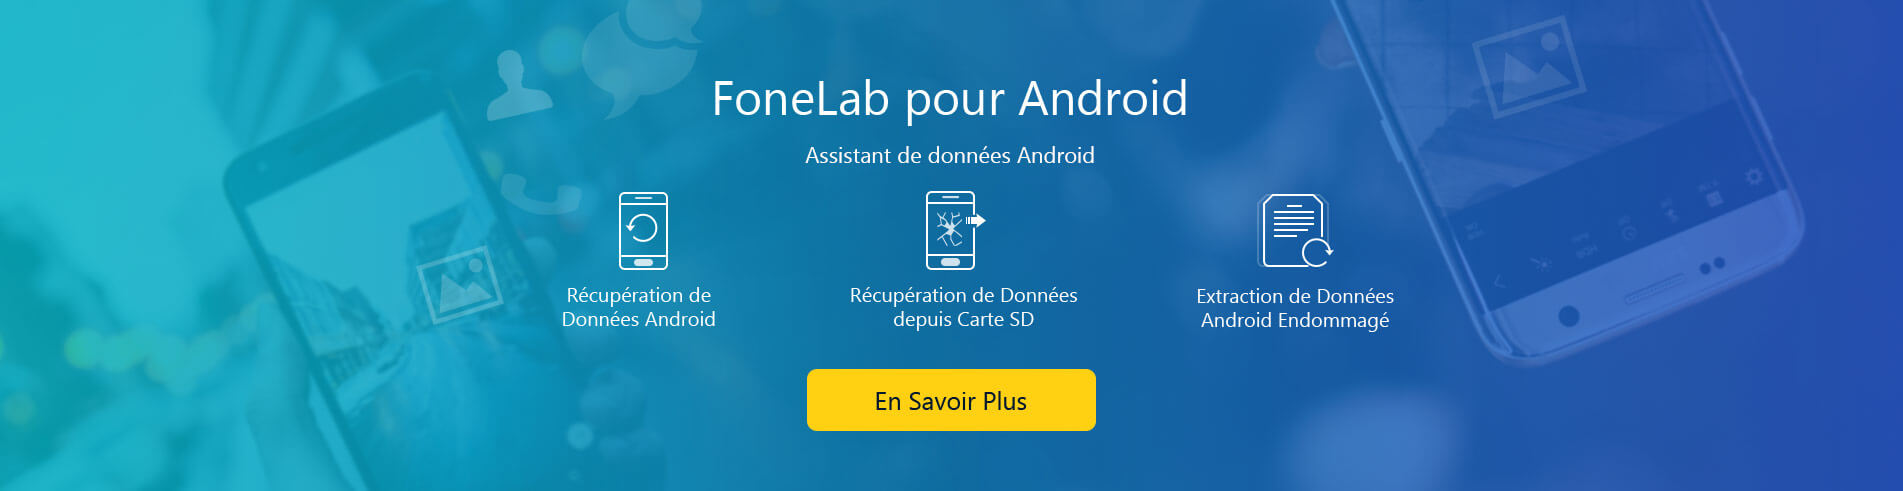 FoneLab pour Android